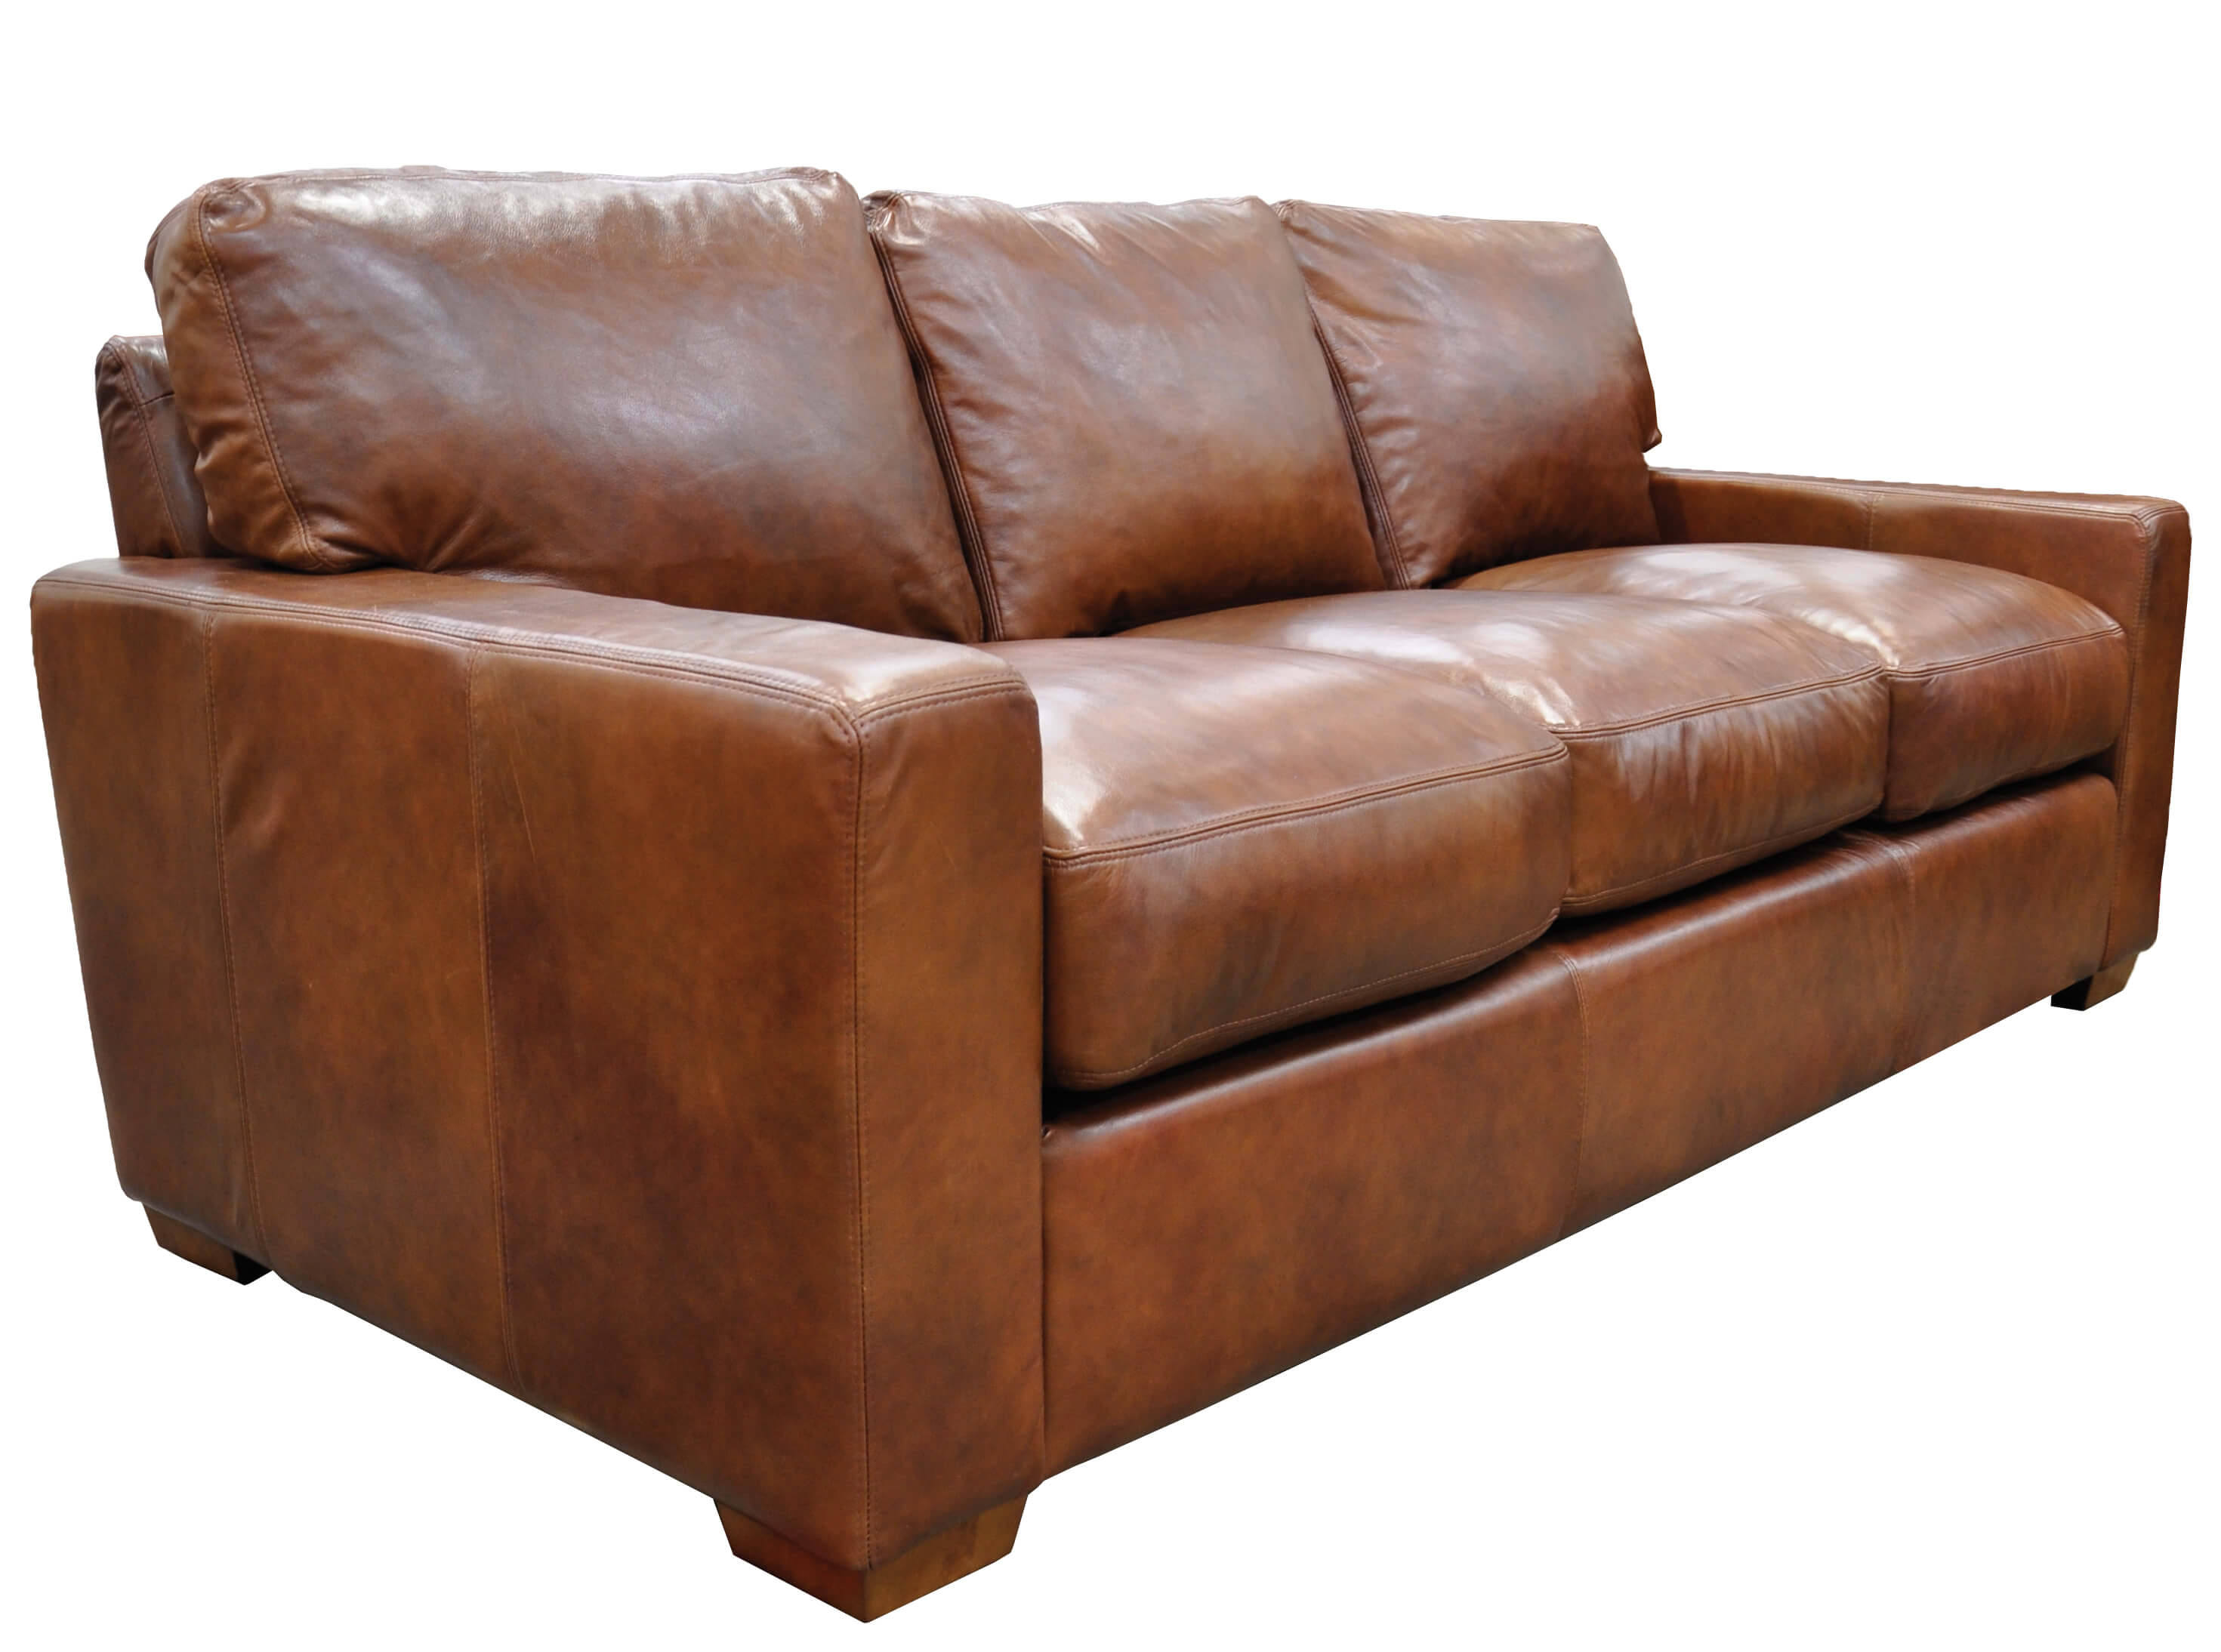 Who S Sofa michigan s largest selection leather sofas be seated leather furniture